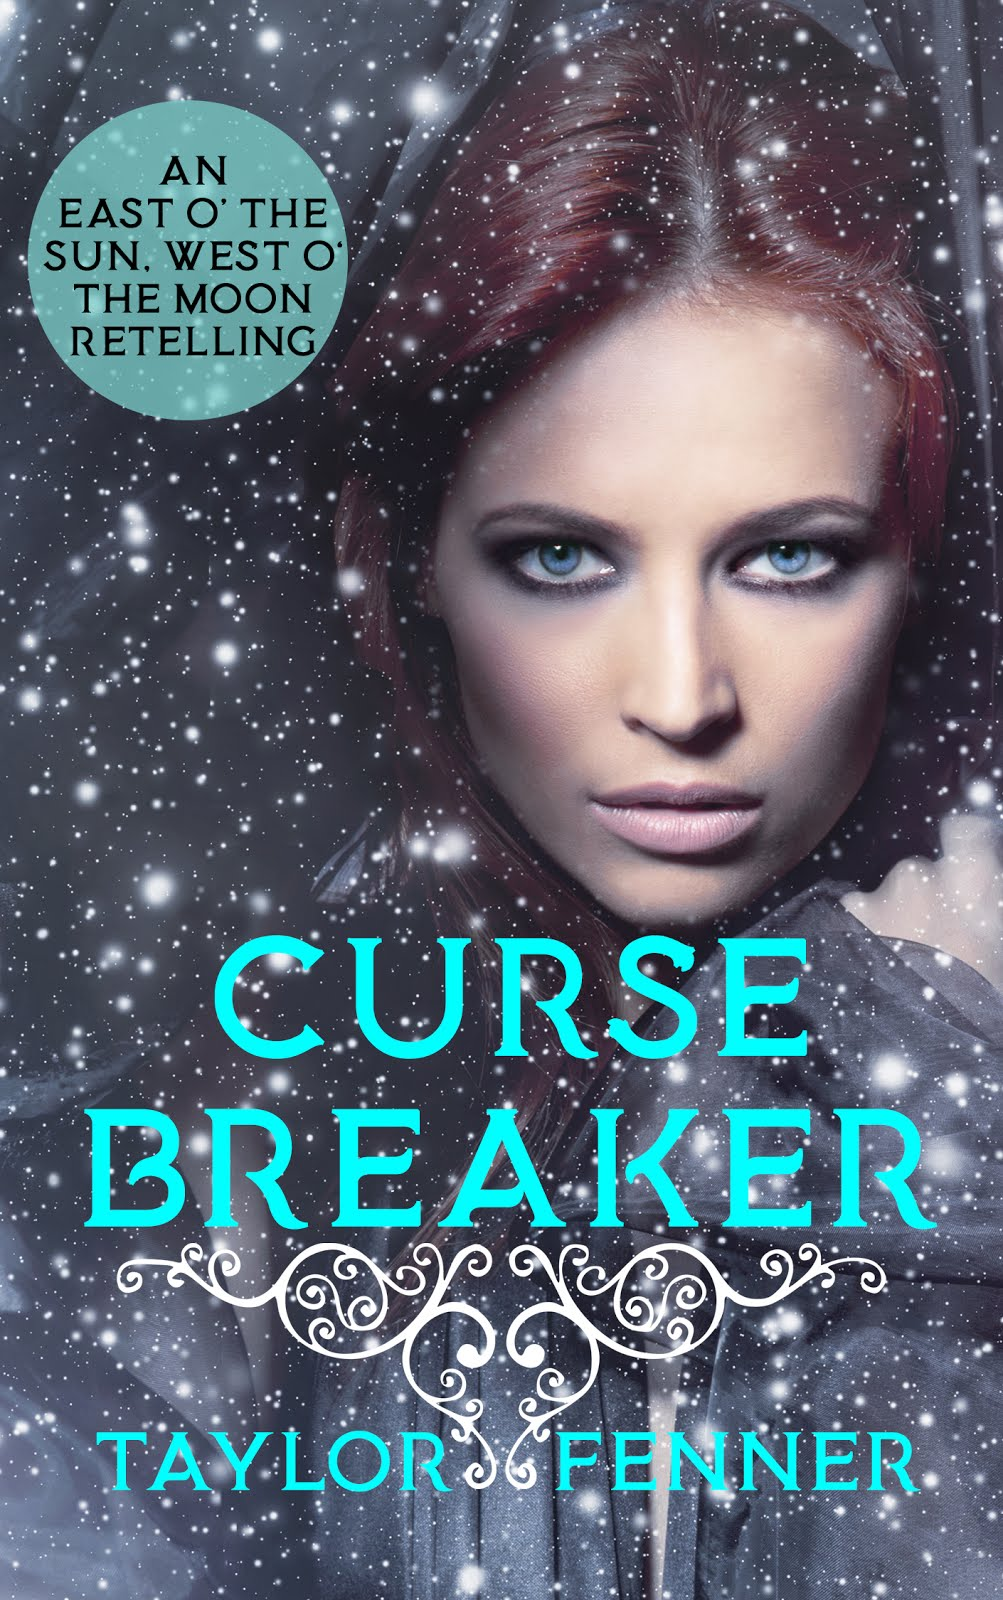 CurseBreaker: An East O' The Sun and West O' The Moon Retelling